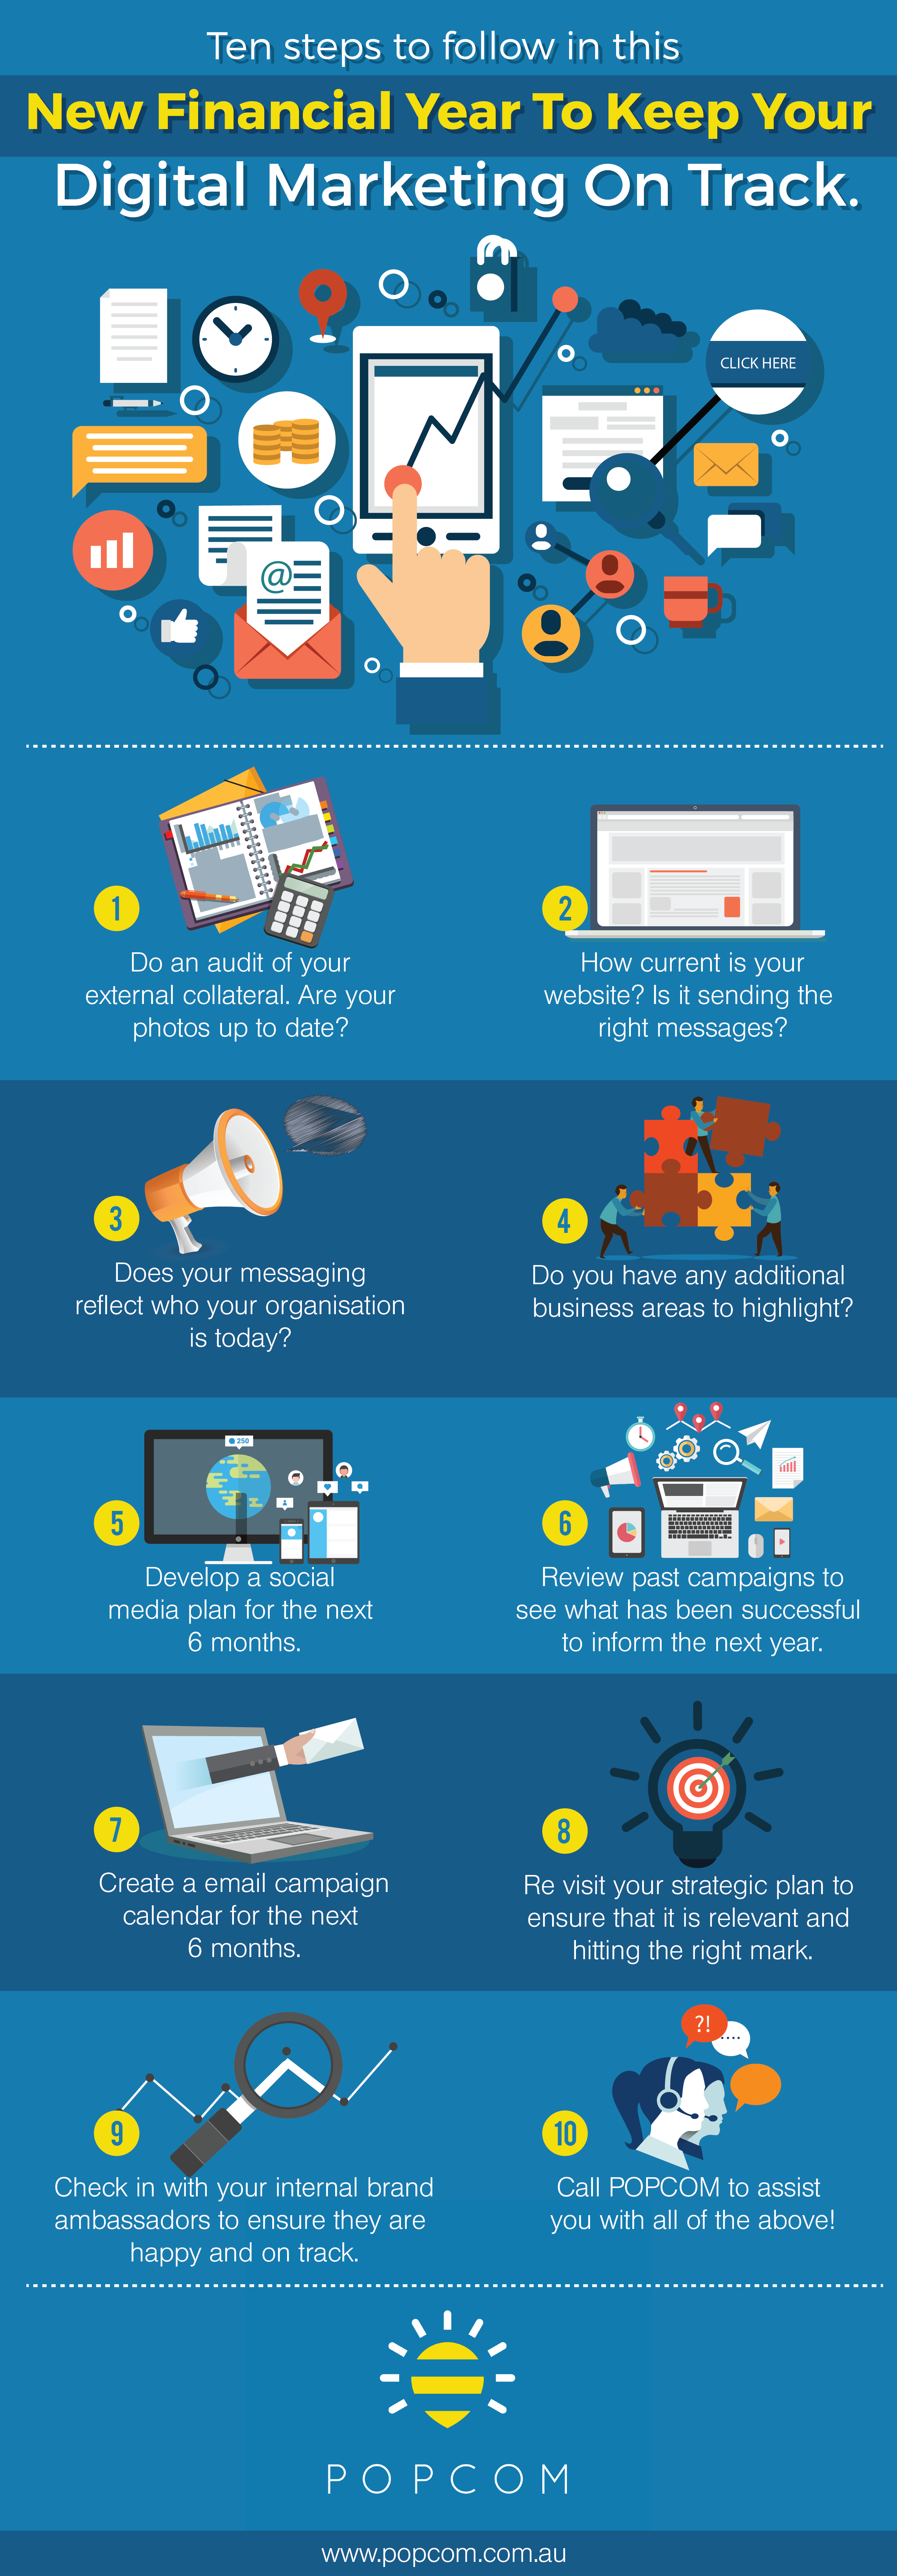 2 Ten steps to follow in this new financial year to keep your digital marketing on track-01[1].png